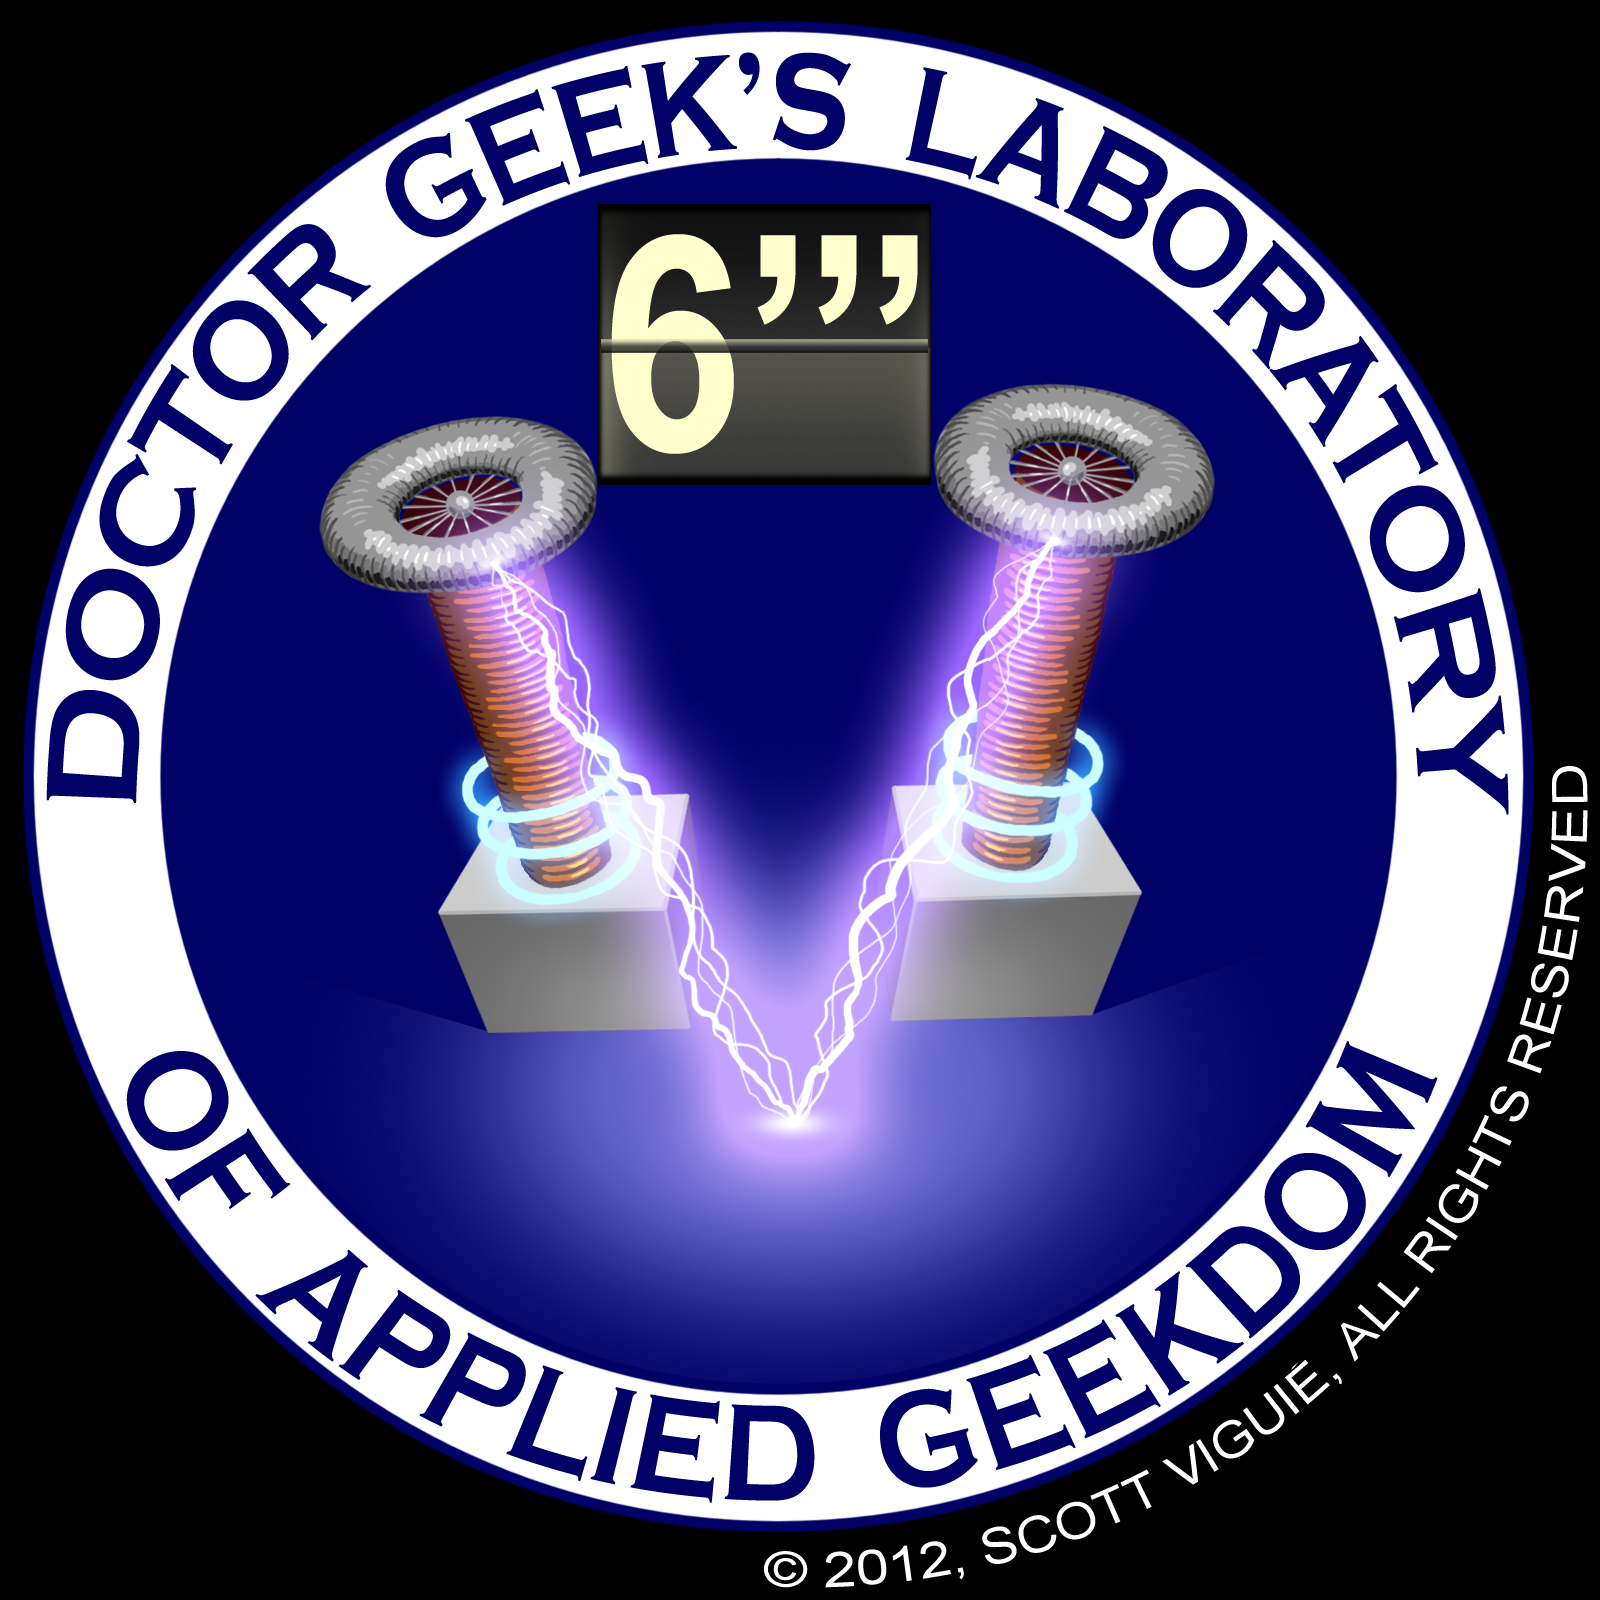 What Is Applied Geekdom?